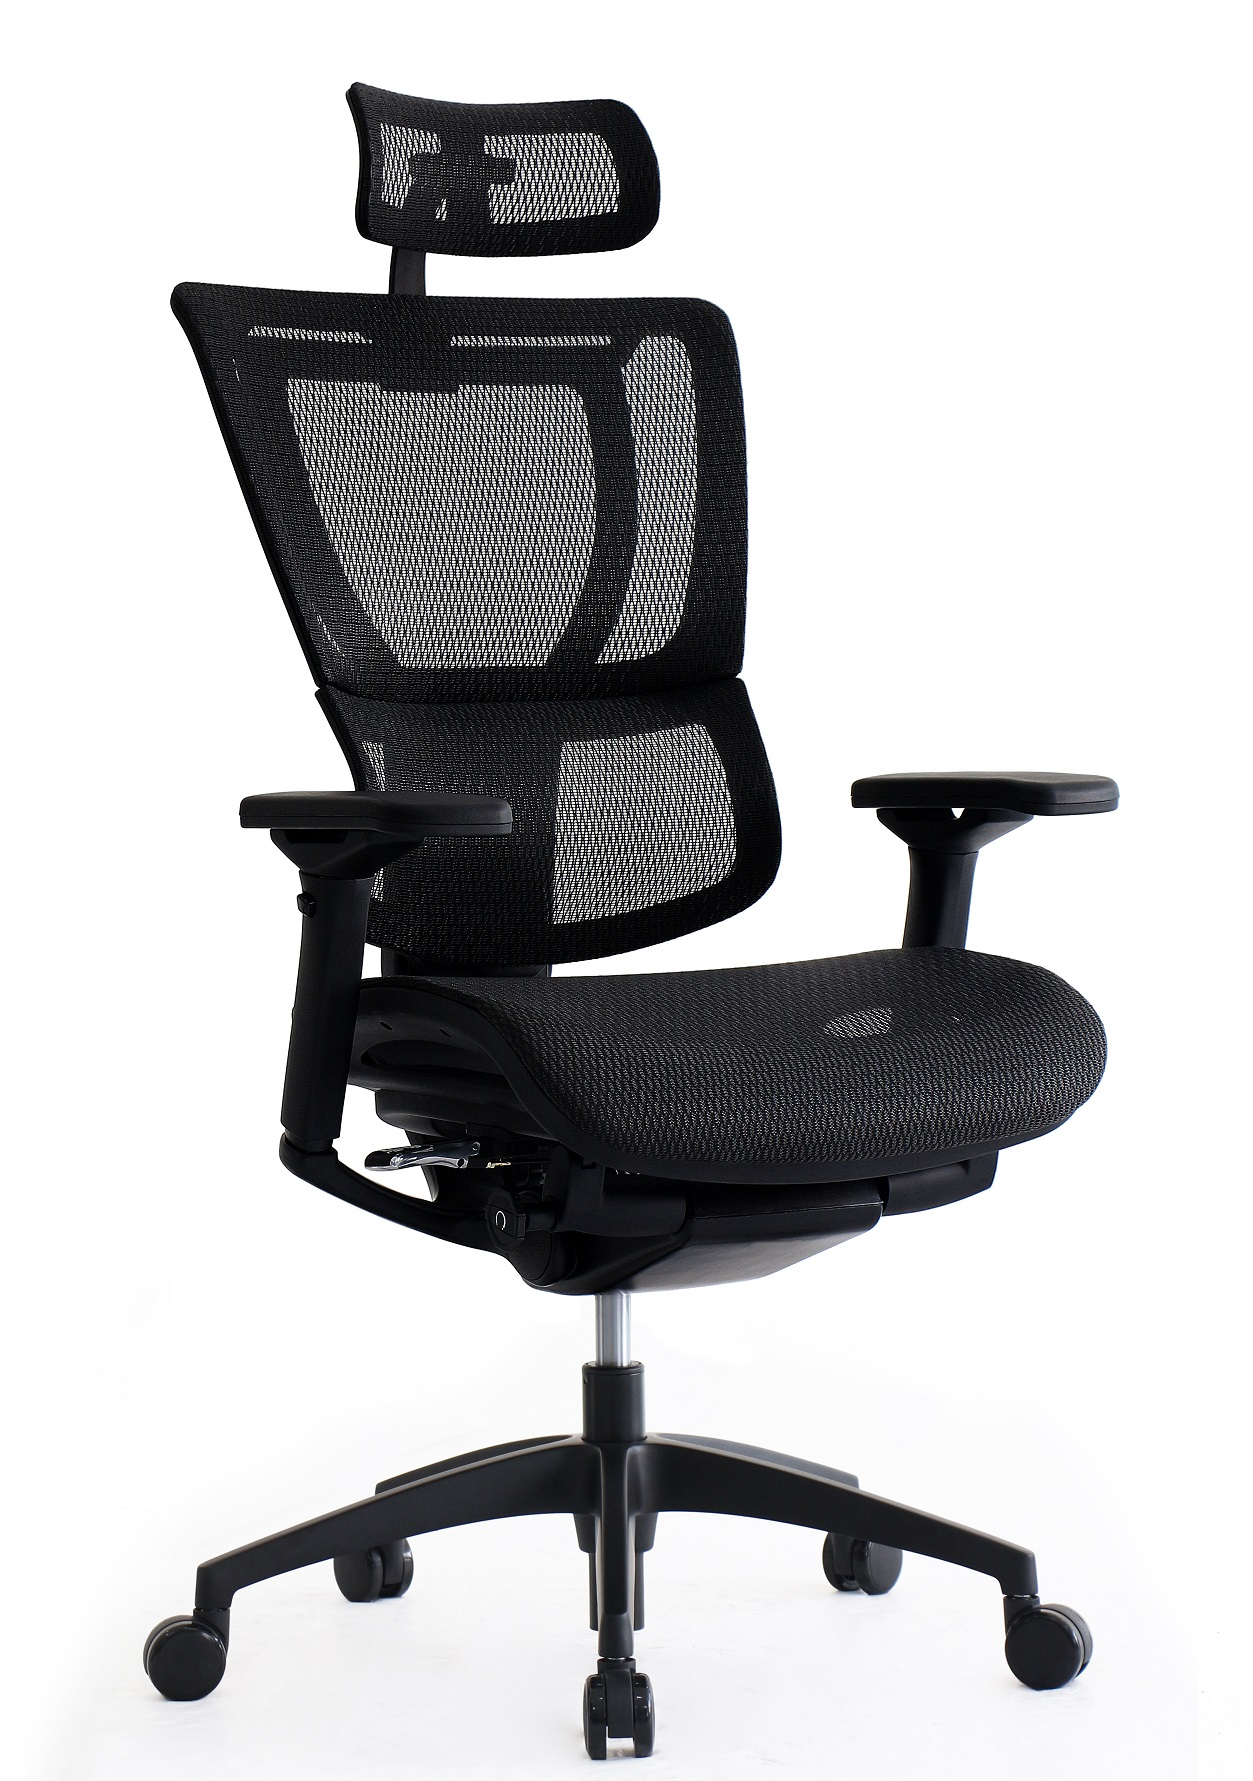 raynor ergohuman chair black and white leather dining chairs office studio drum stools carmichael throne shop eurotech ioo frame with headrest